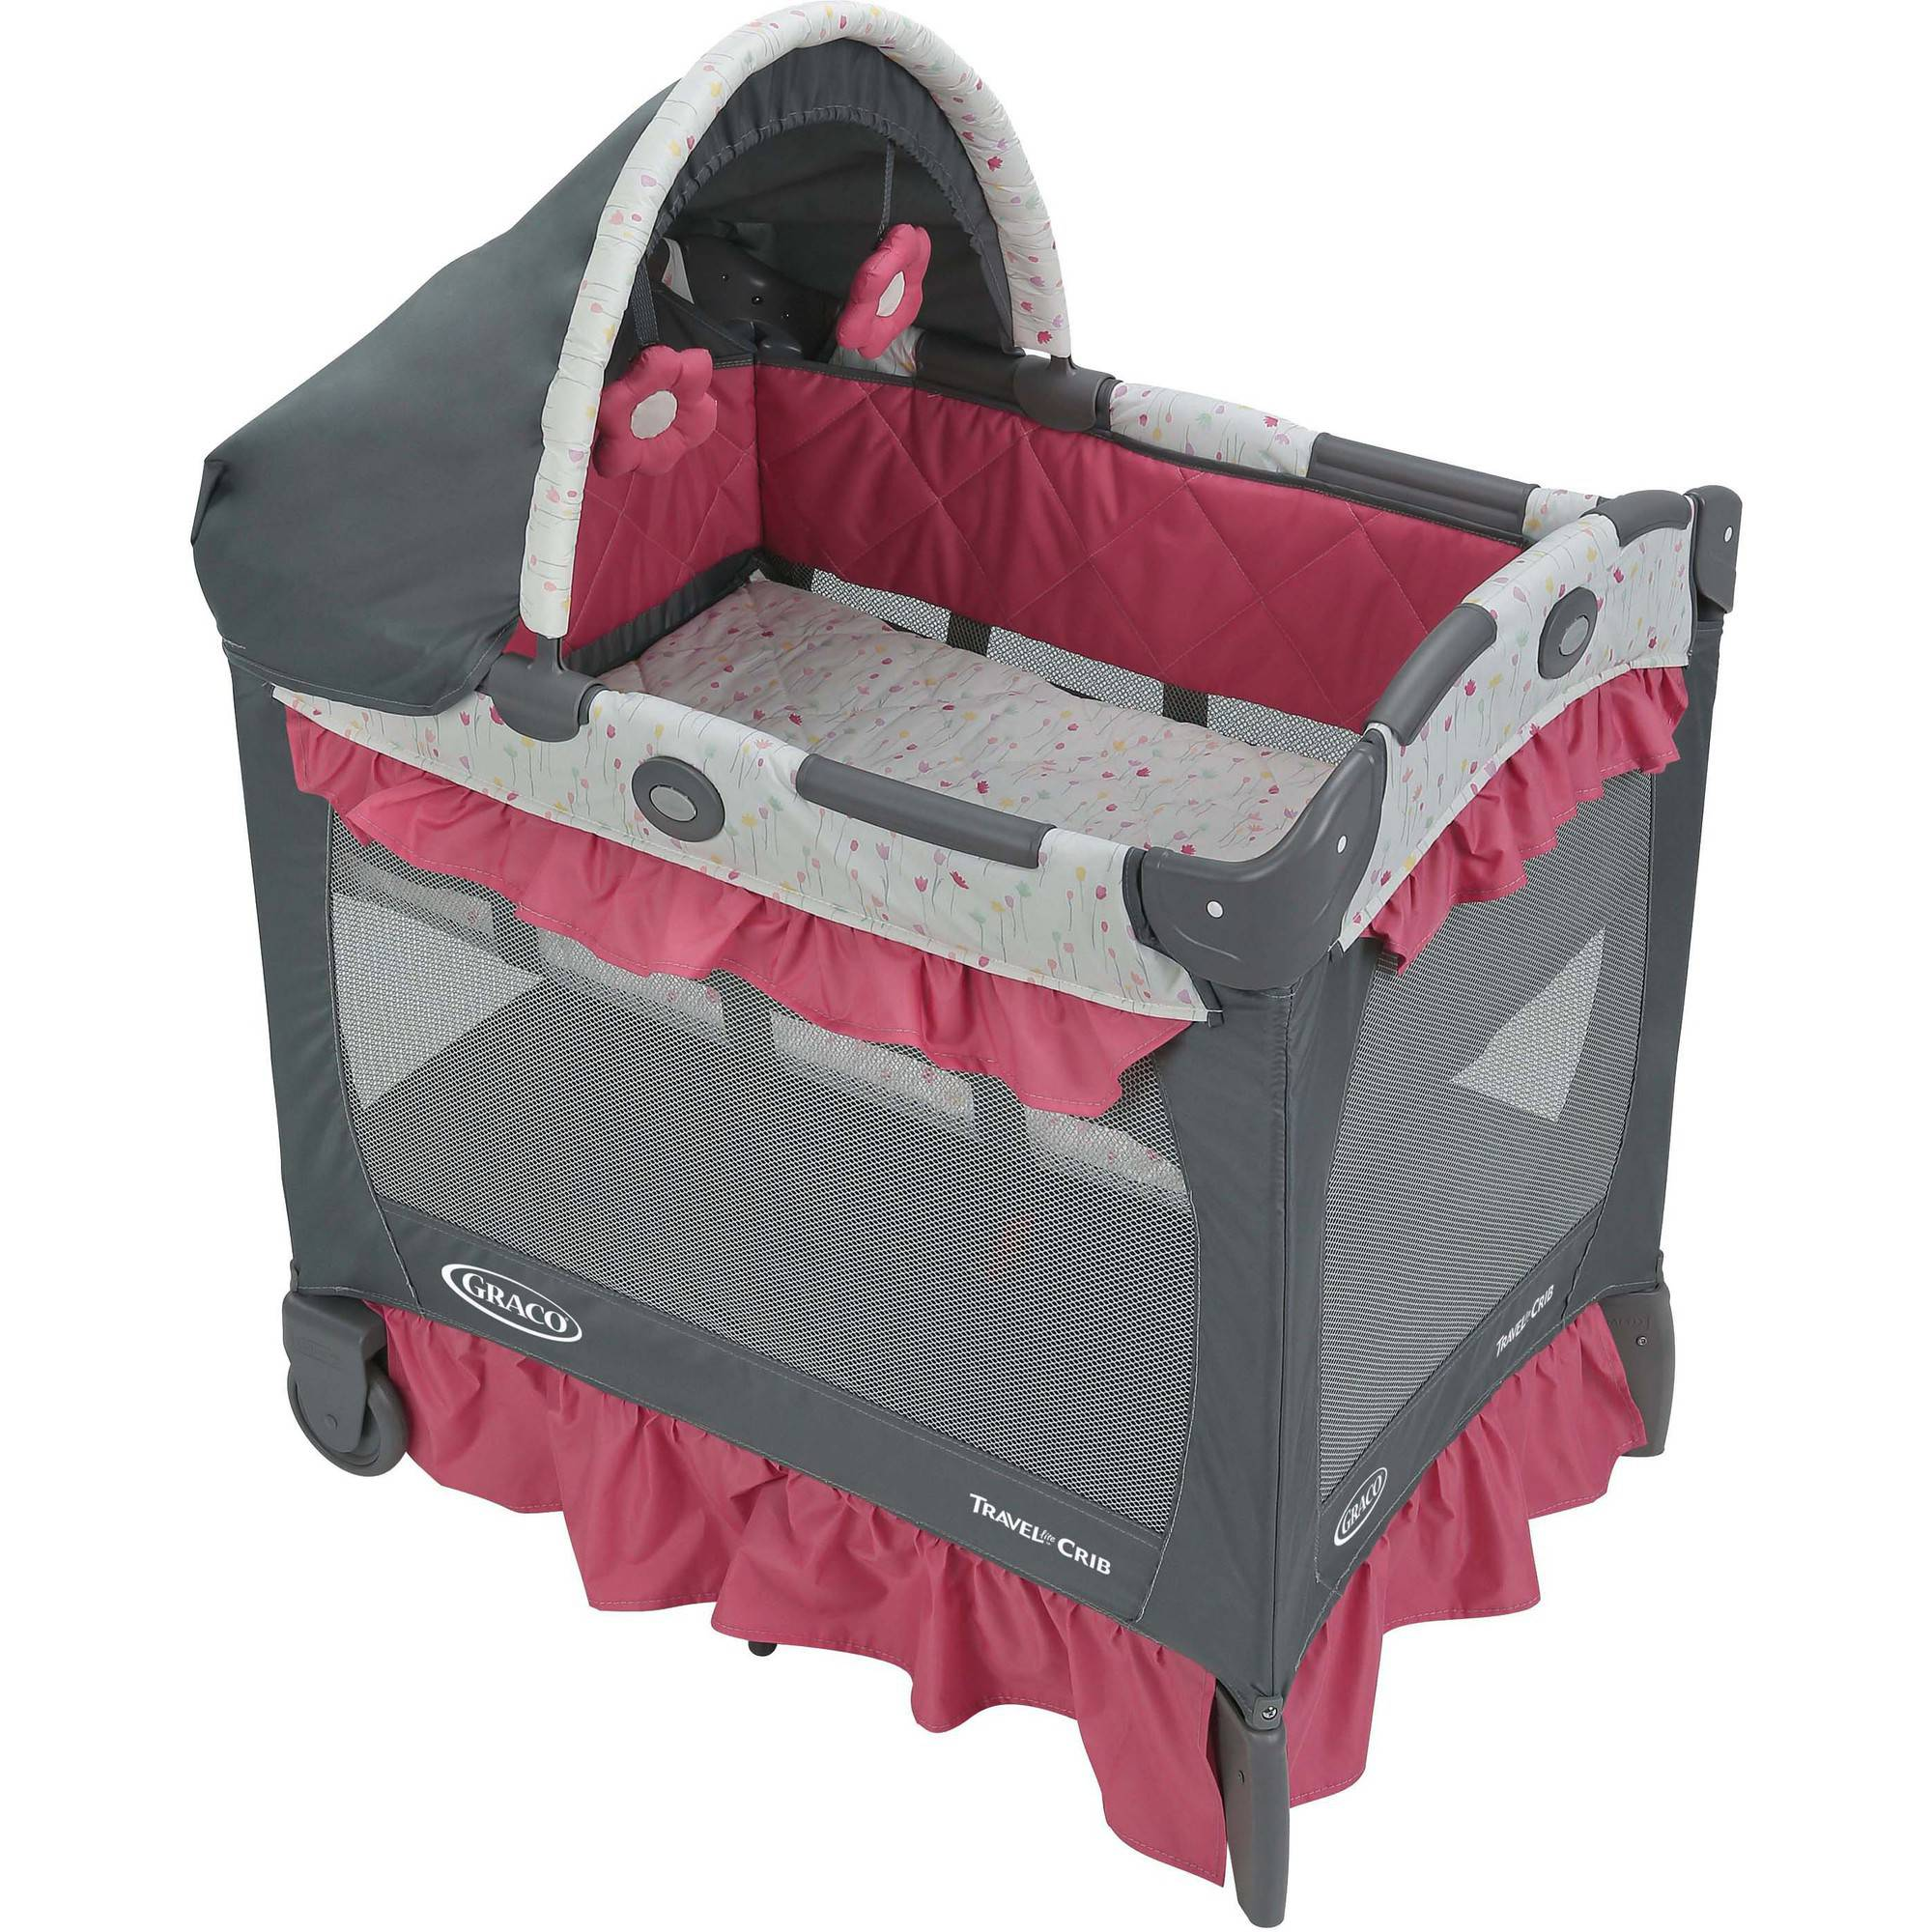 Graco Pack 'n Play Travel Lite Crib, Portable Baby Playard Crib, Alma